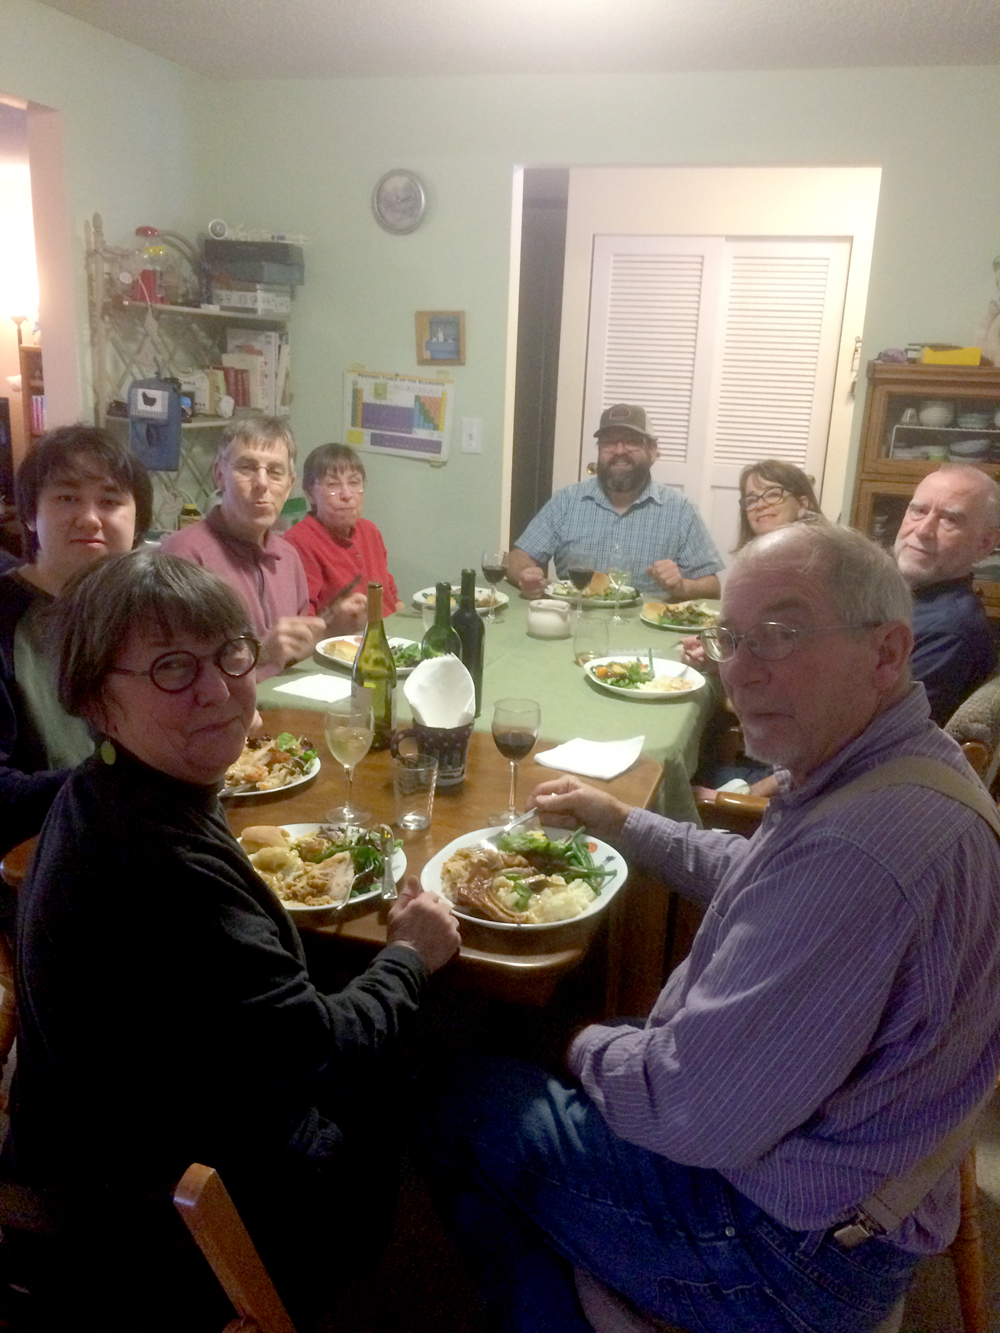 - Christmas Day dinner at Paul and Keiko's. Clockwise from the bottom, Michael Clough, Cathy, Corwin (Paul and Keiko's son), Randy, Sally, Joel, Jenny, and Ron.